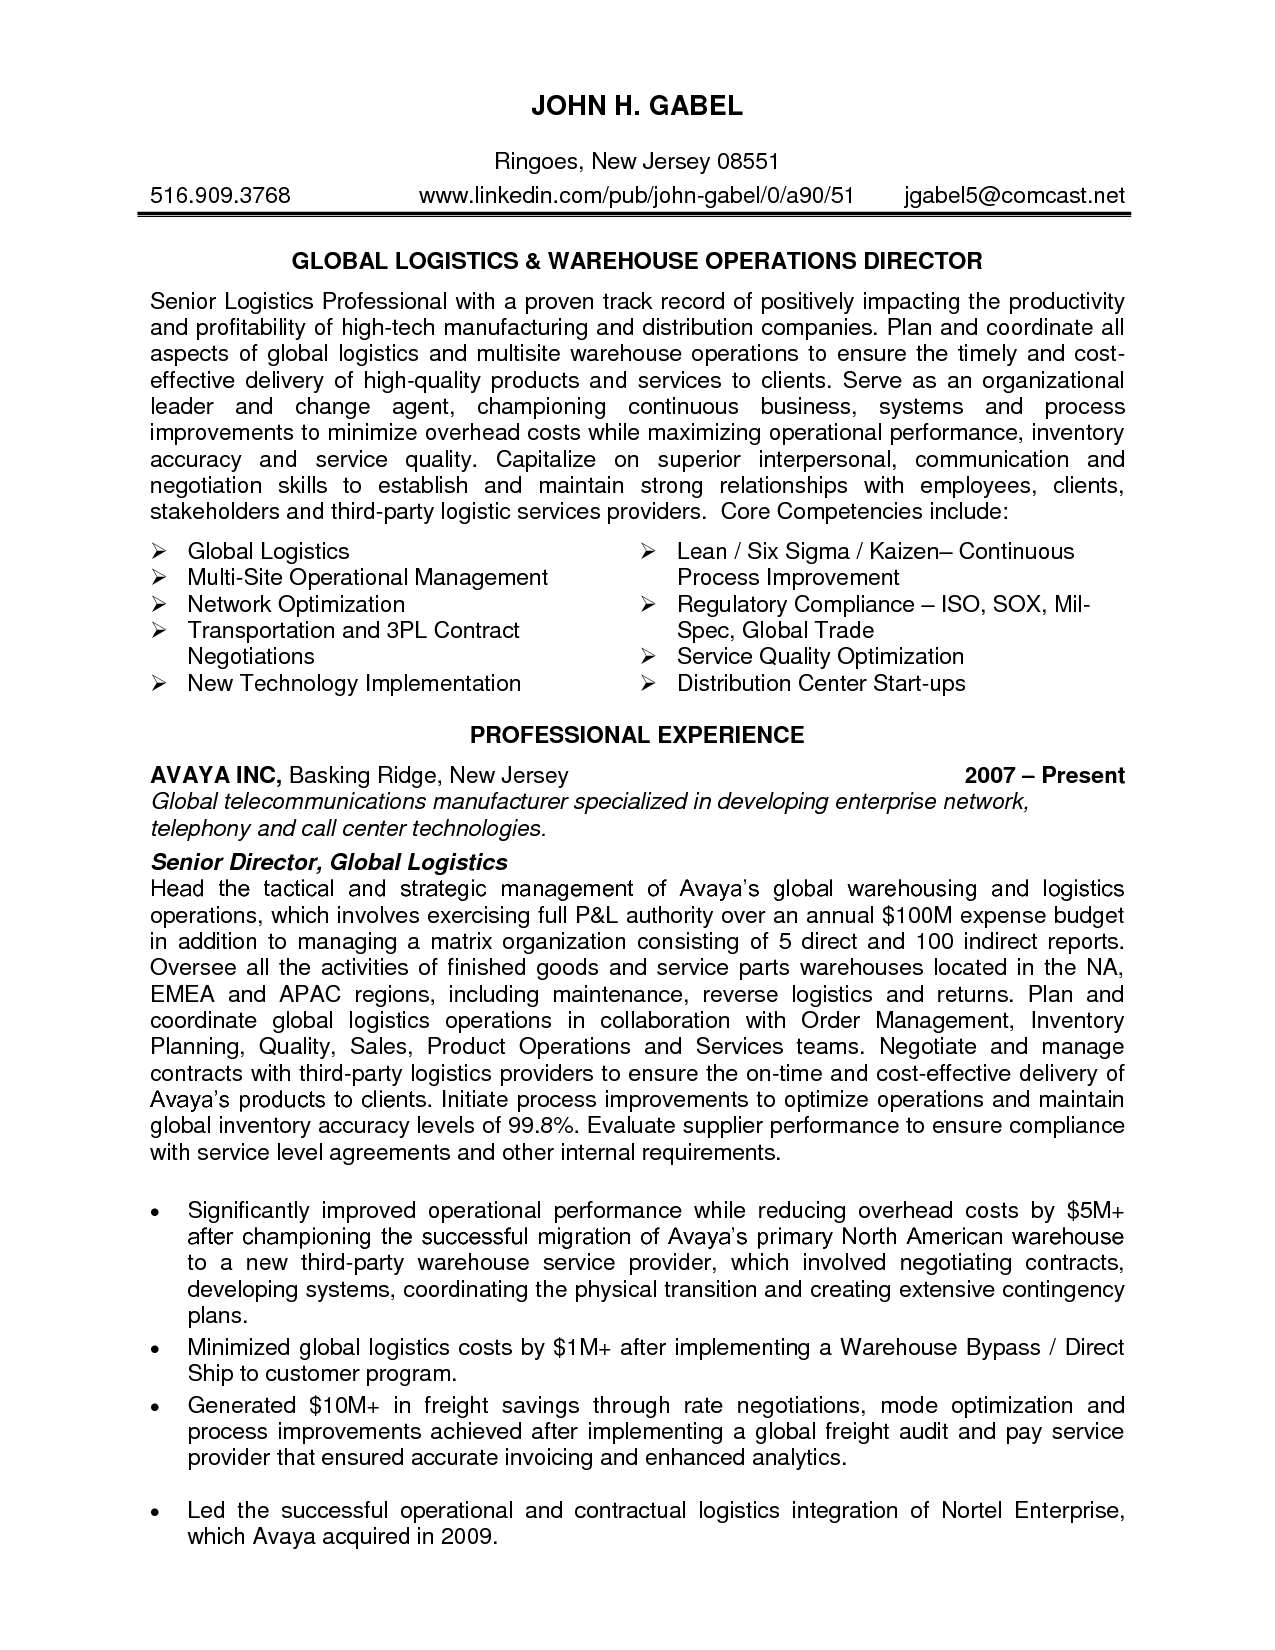 senior logistic management resume | Director Logistics in NJ PA ...